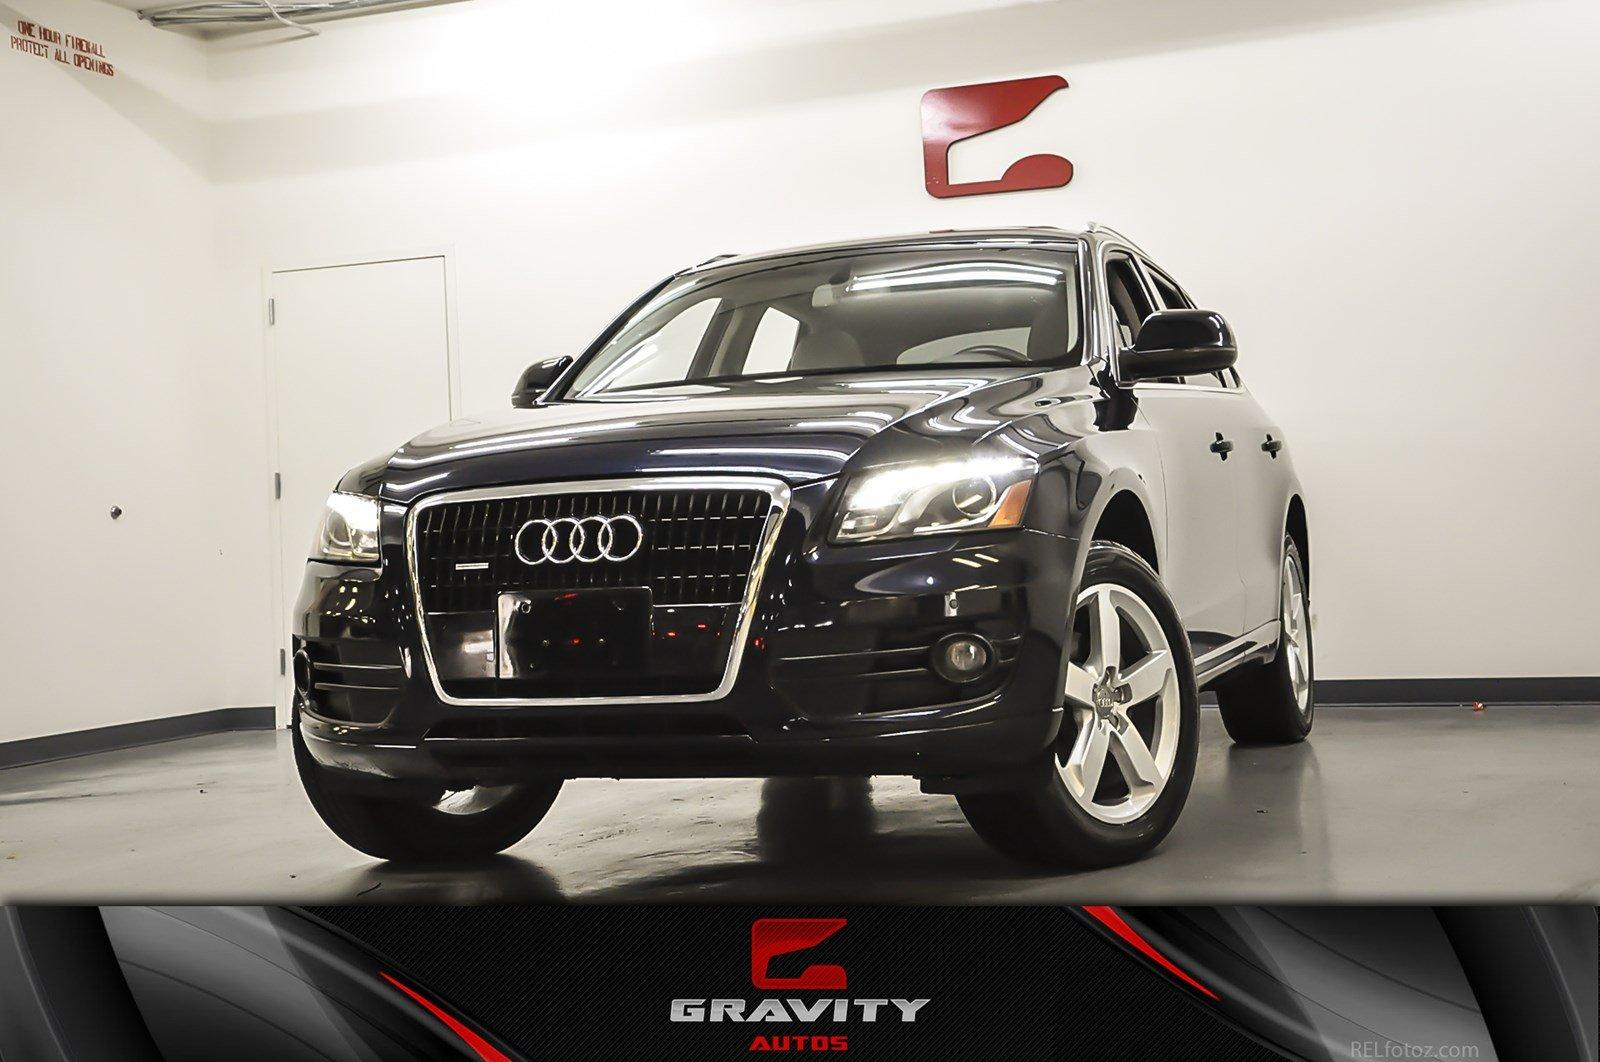 2010 audi q5 premium plus stock 093922 for sale near marietta ga ga audi dealer. Black Bedroom Furniture Sets. Home Design Ideas